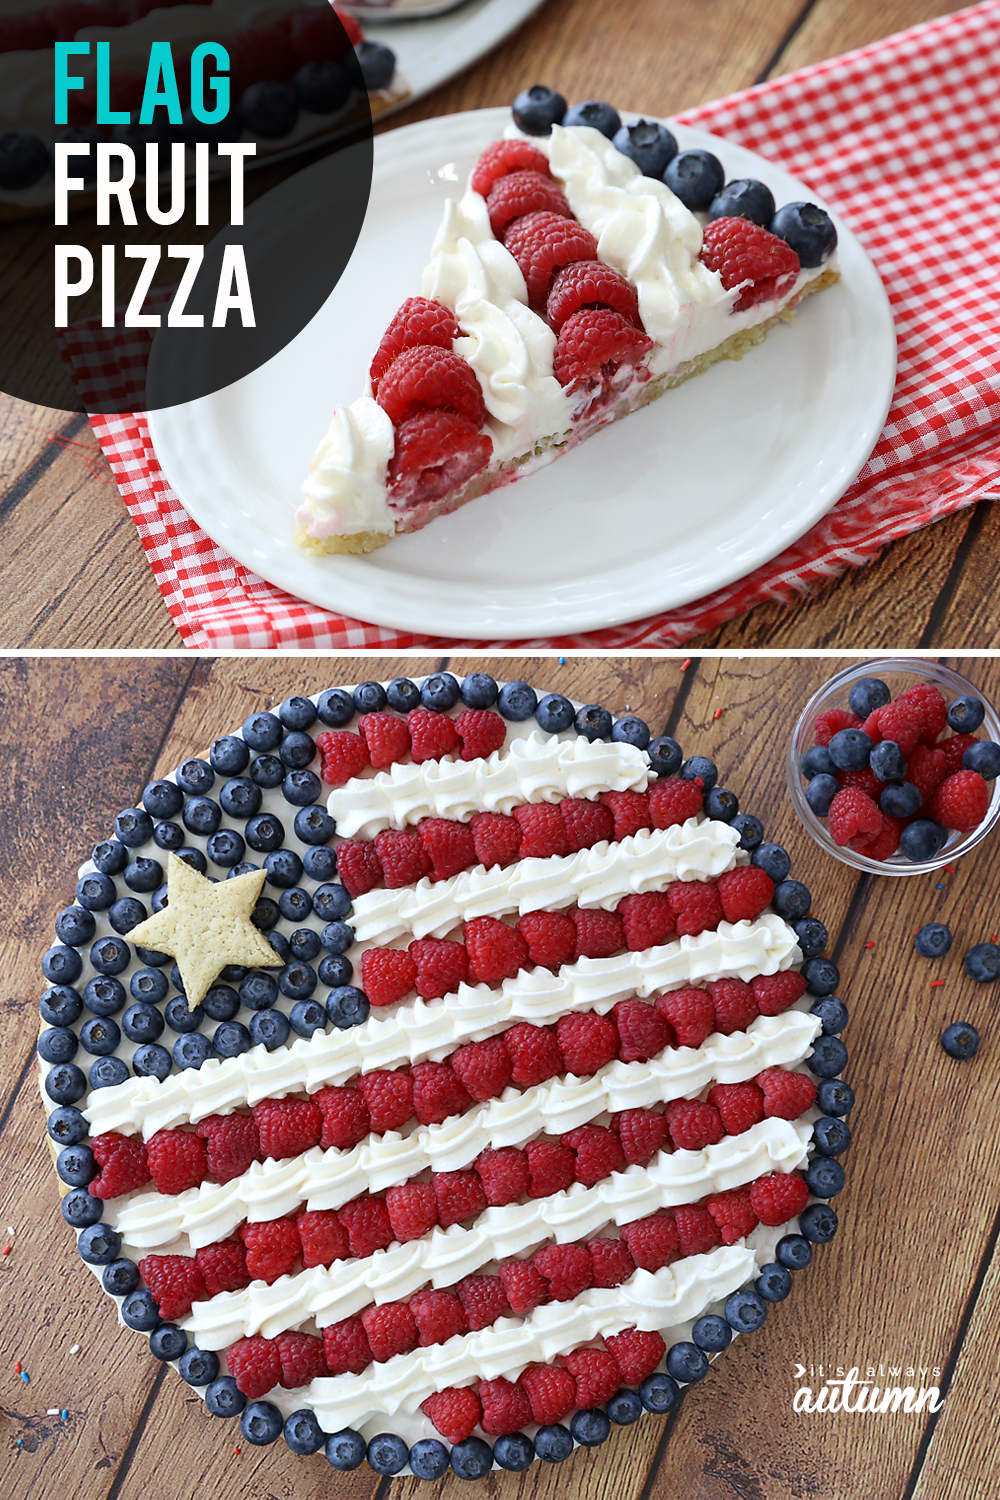 Collage: a slice of American flag fruit pizza; a full fruit pizza decorated to look like an American flag